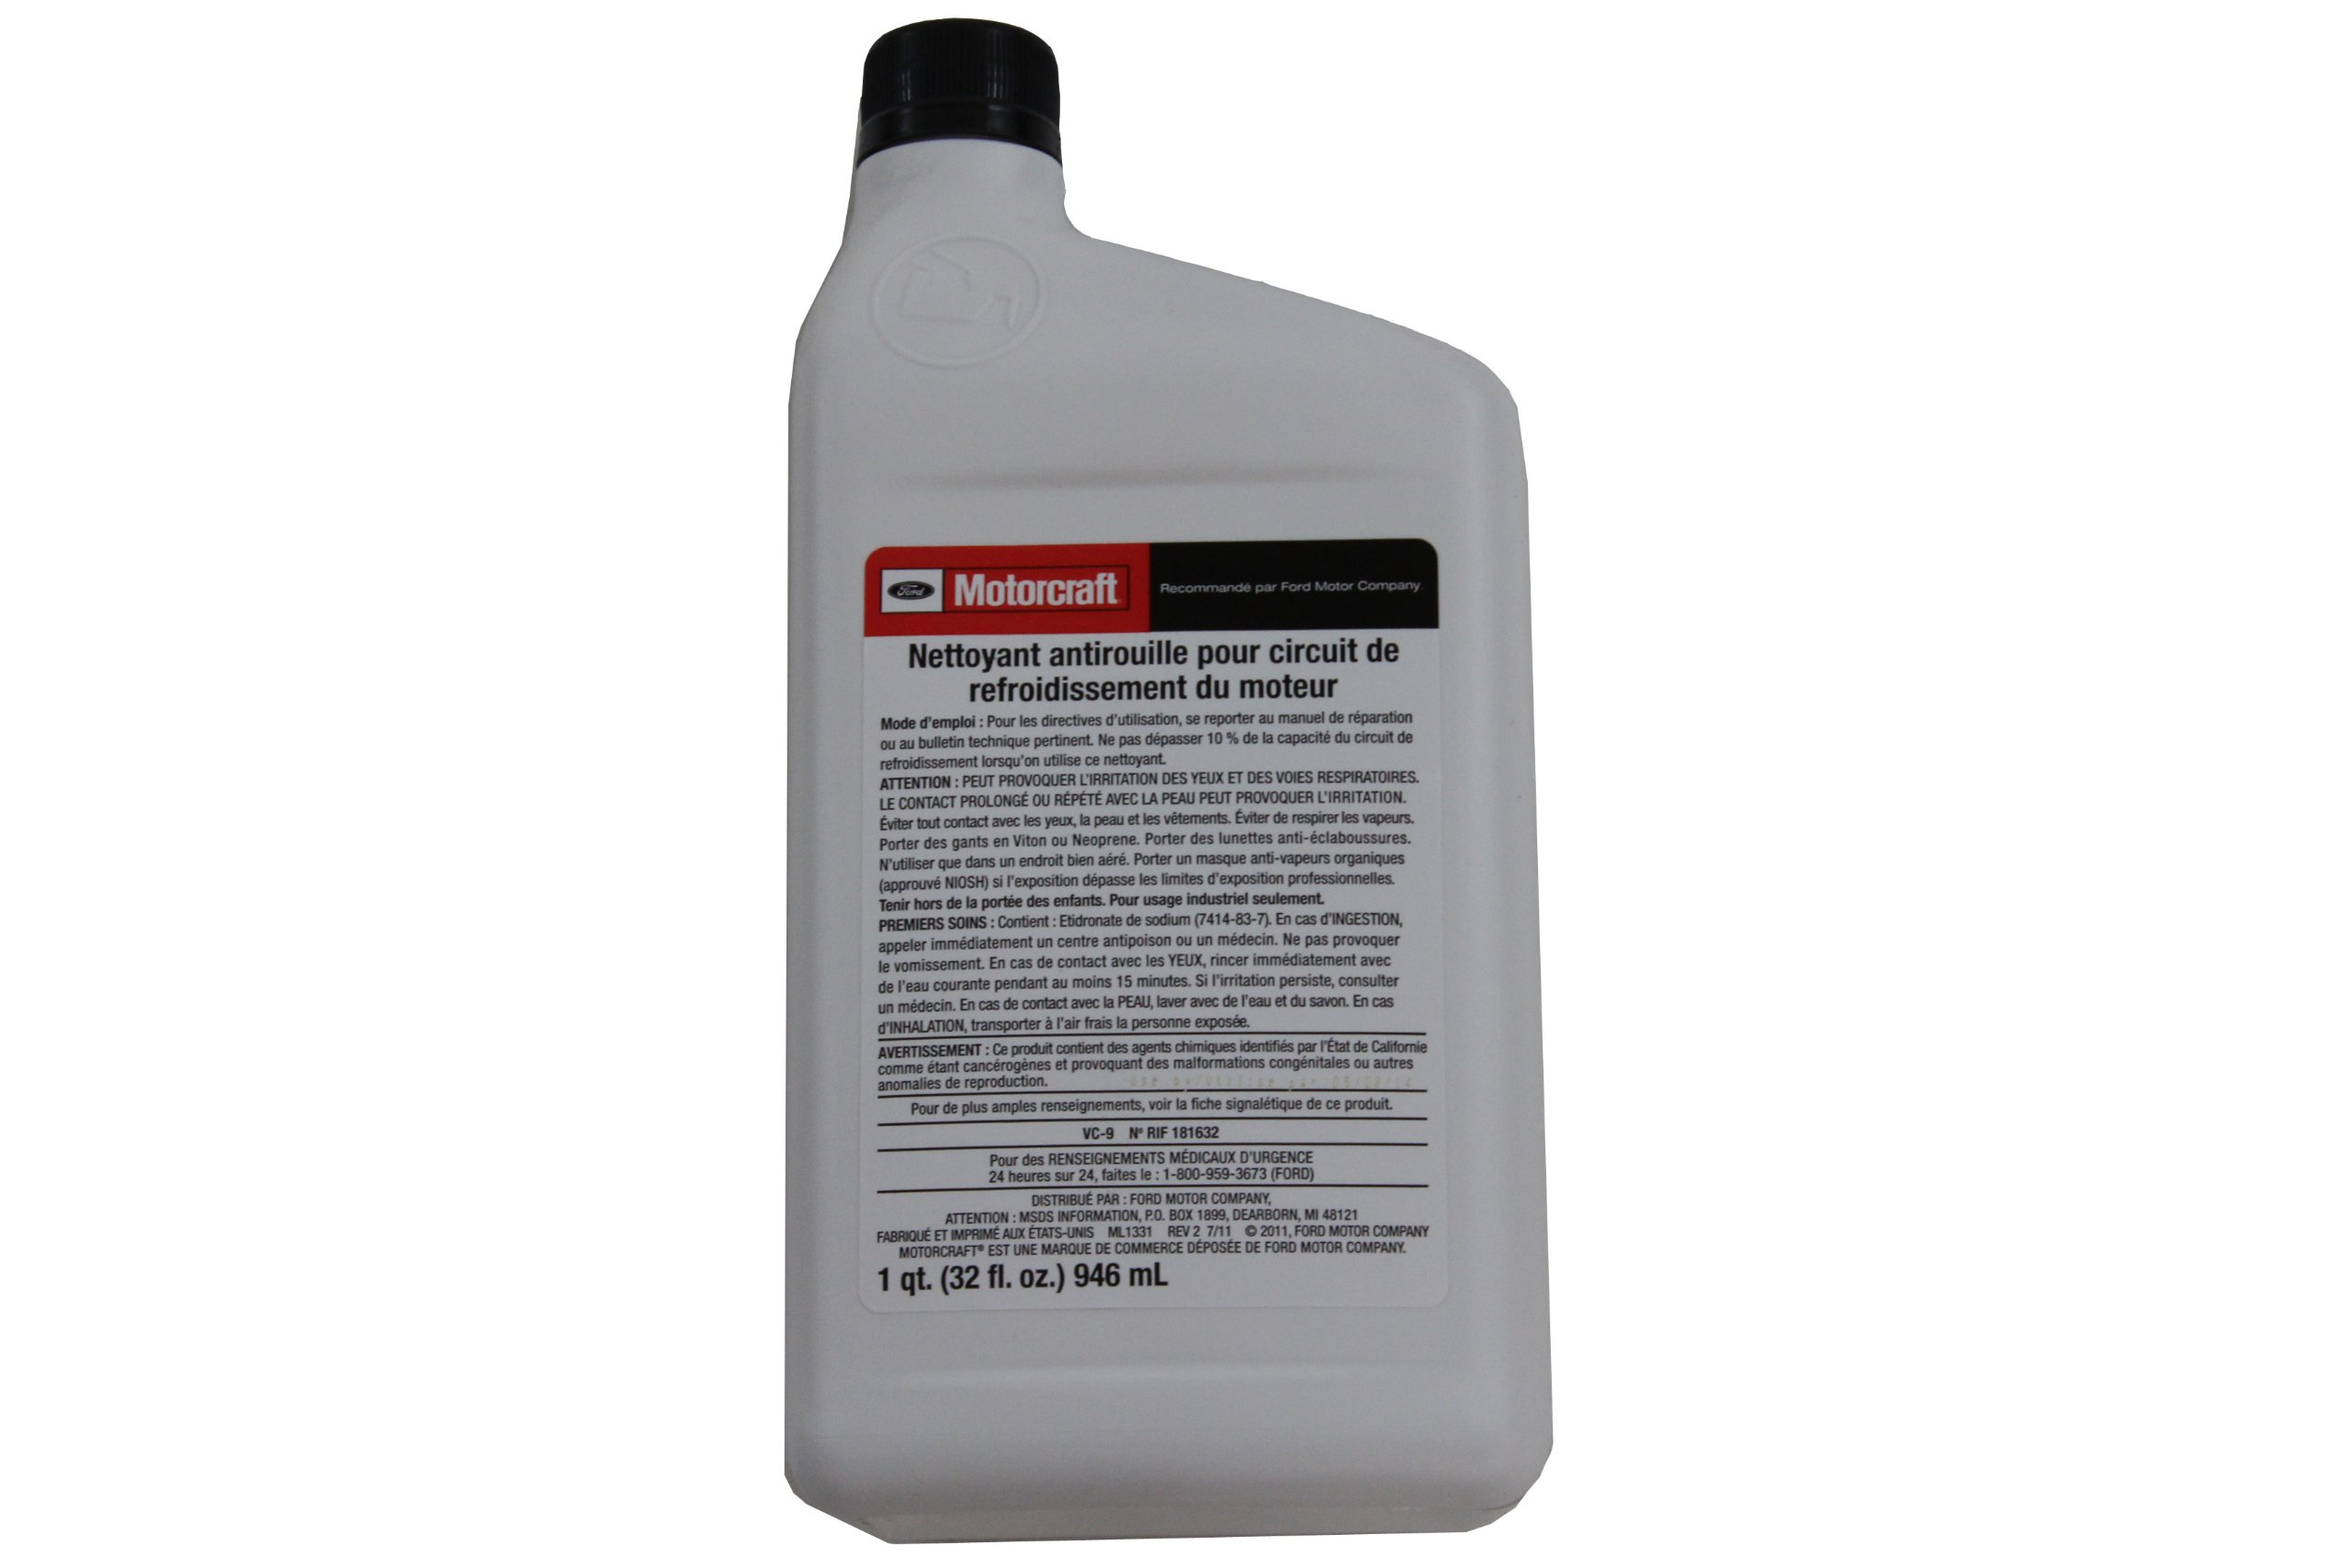 Ford Genuine Fluid VC-9 Engine Cooling System Iron Cleaner - 1 Quart by Ford